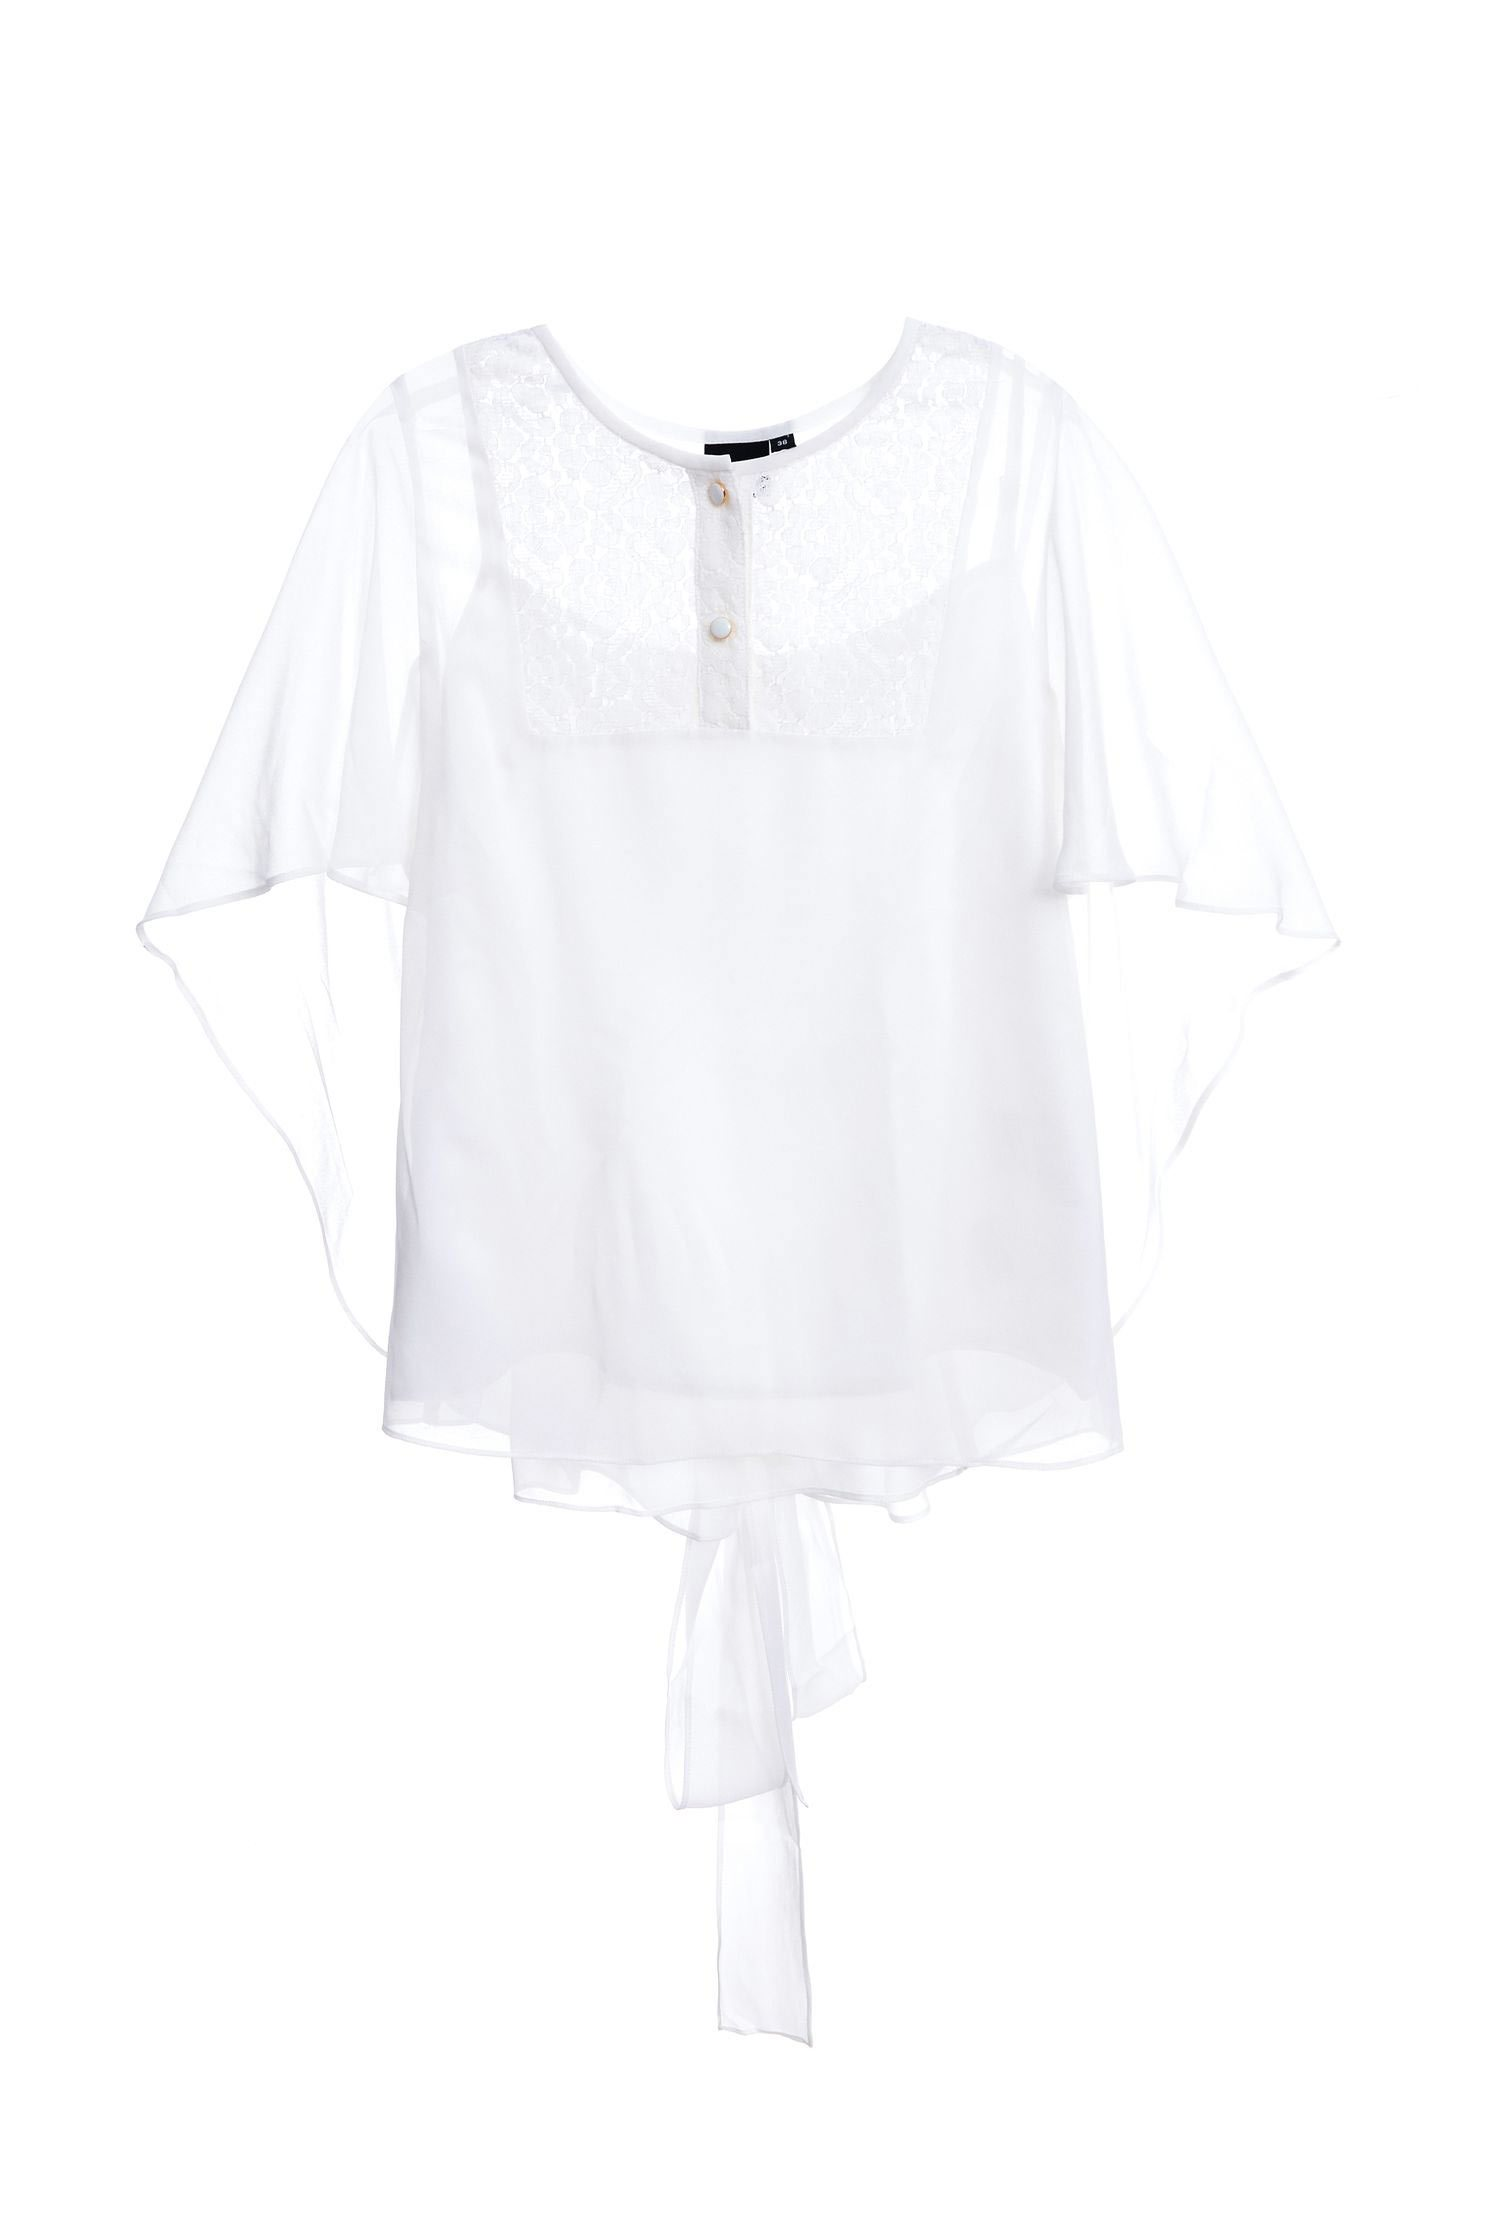 Lace back strap classic design short-sleeved top